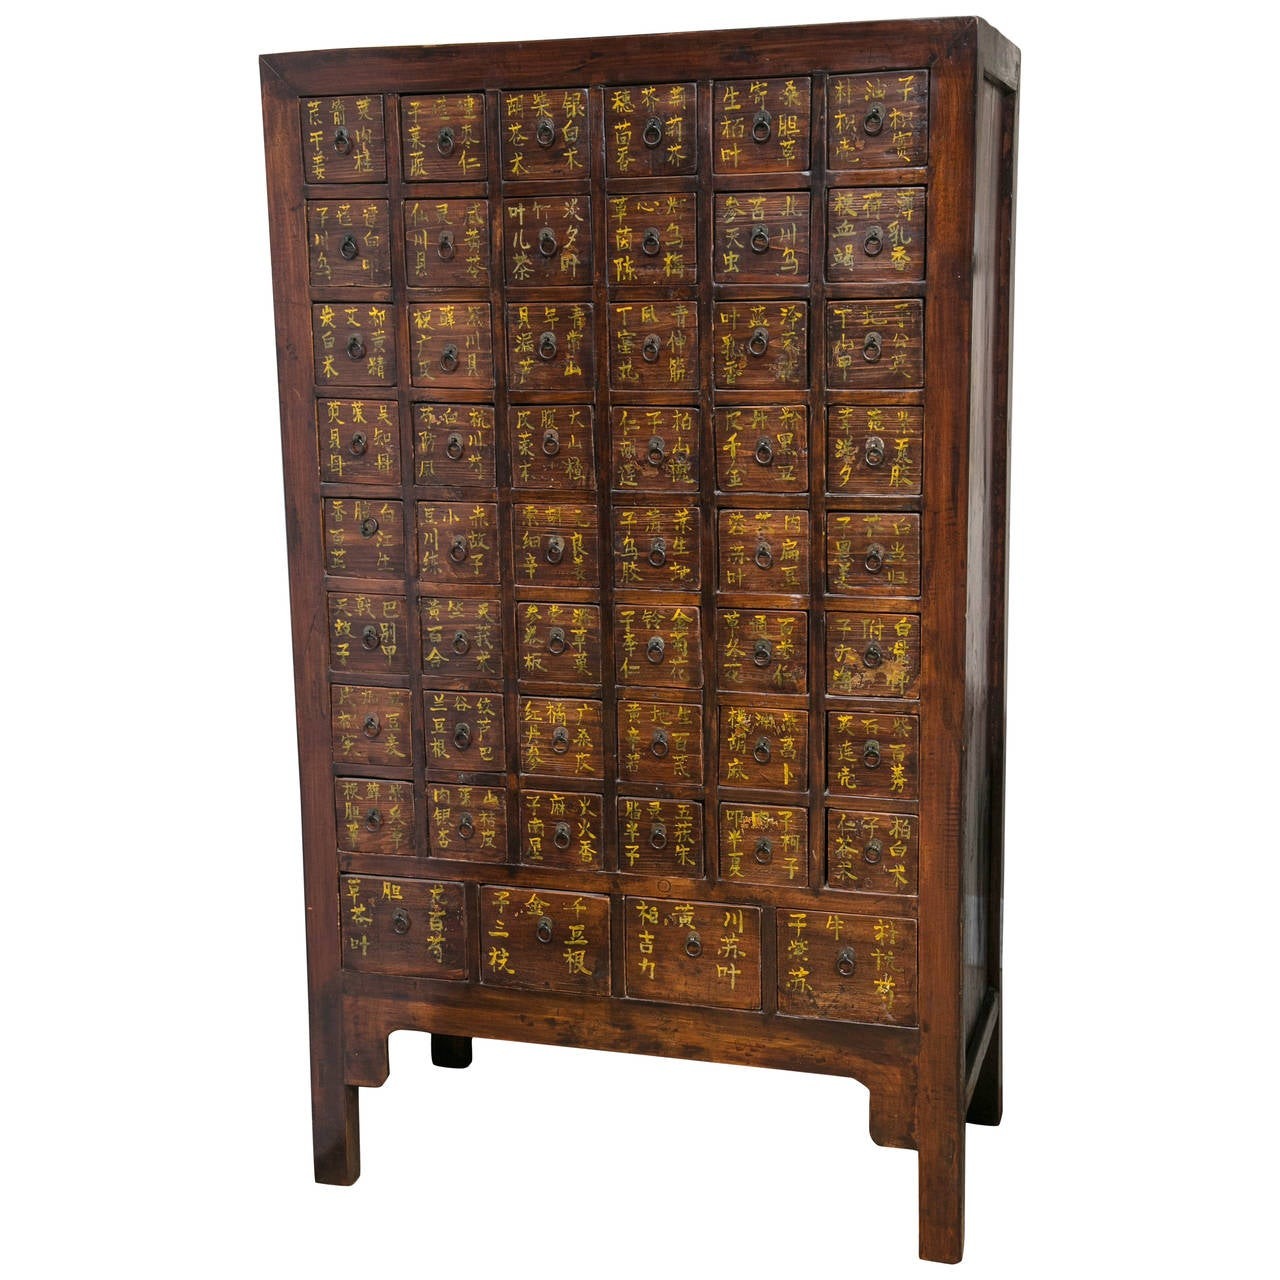 Antique Chinese Apothecary Medicine Chest At 1stdibs